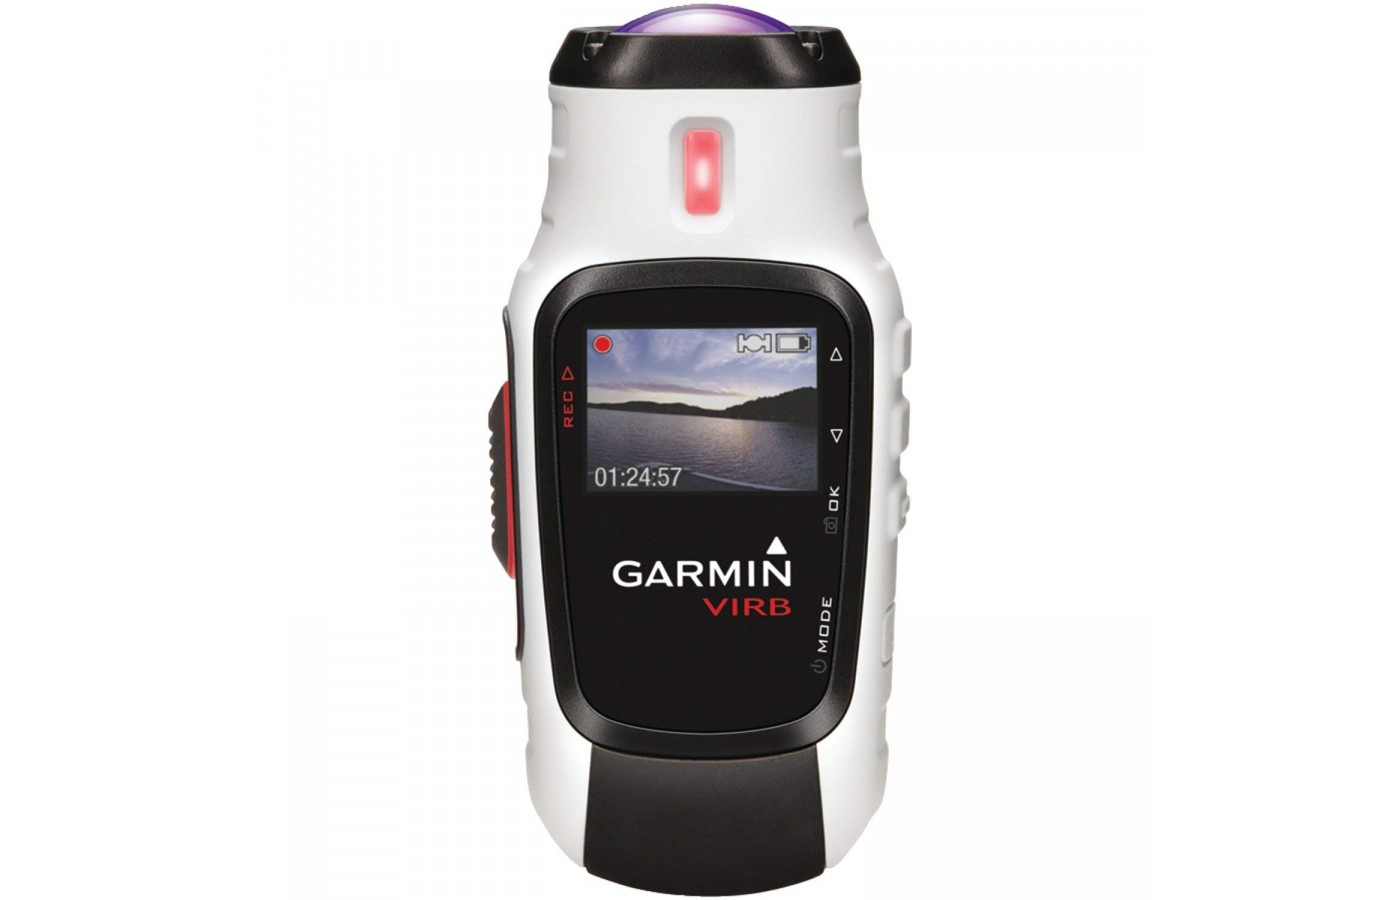 The Garmin Virb Elite has a rechargeable and removable battery for all day use.